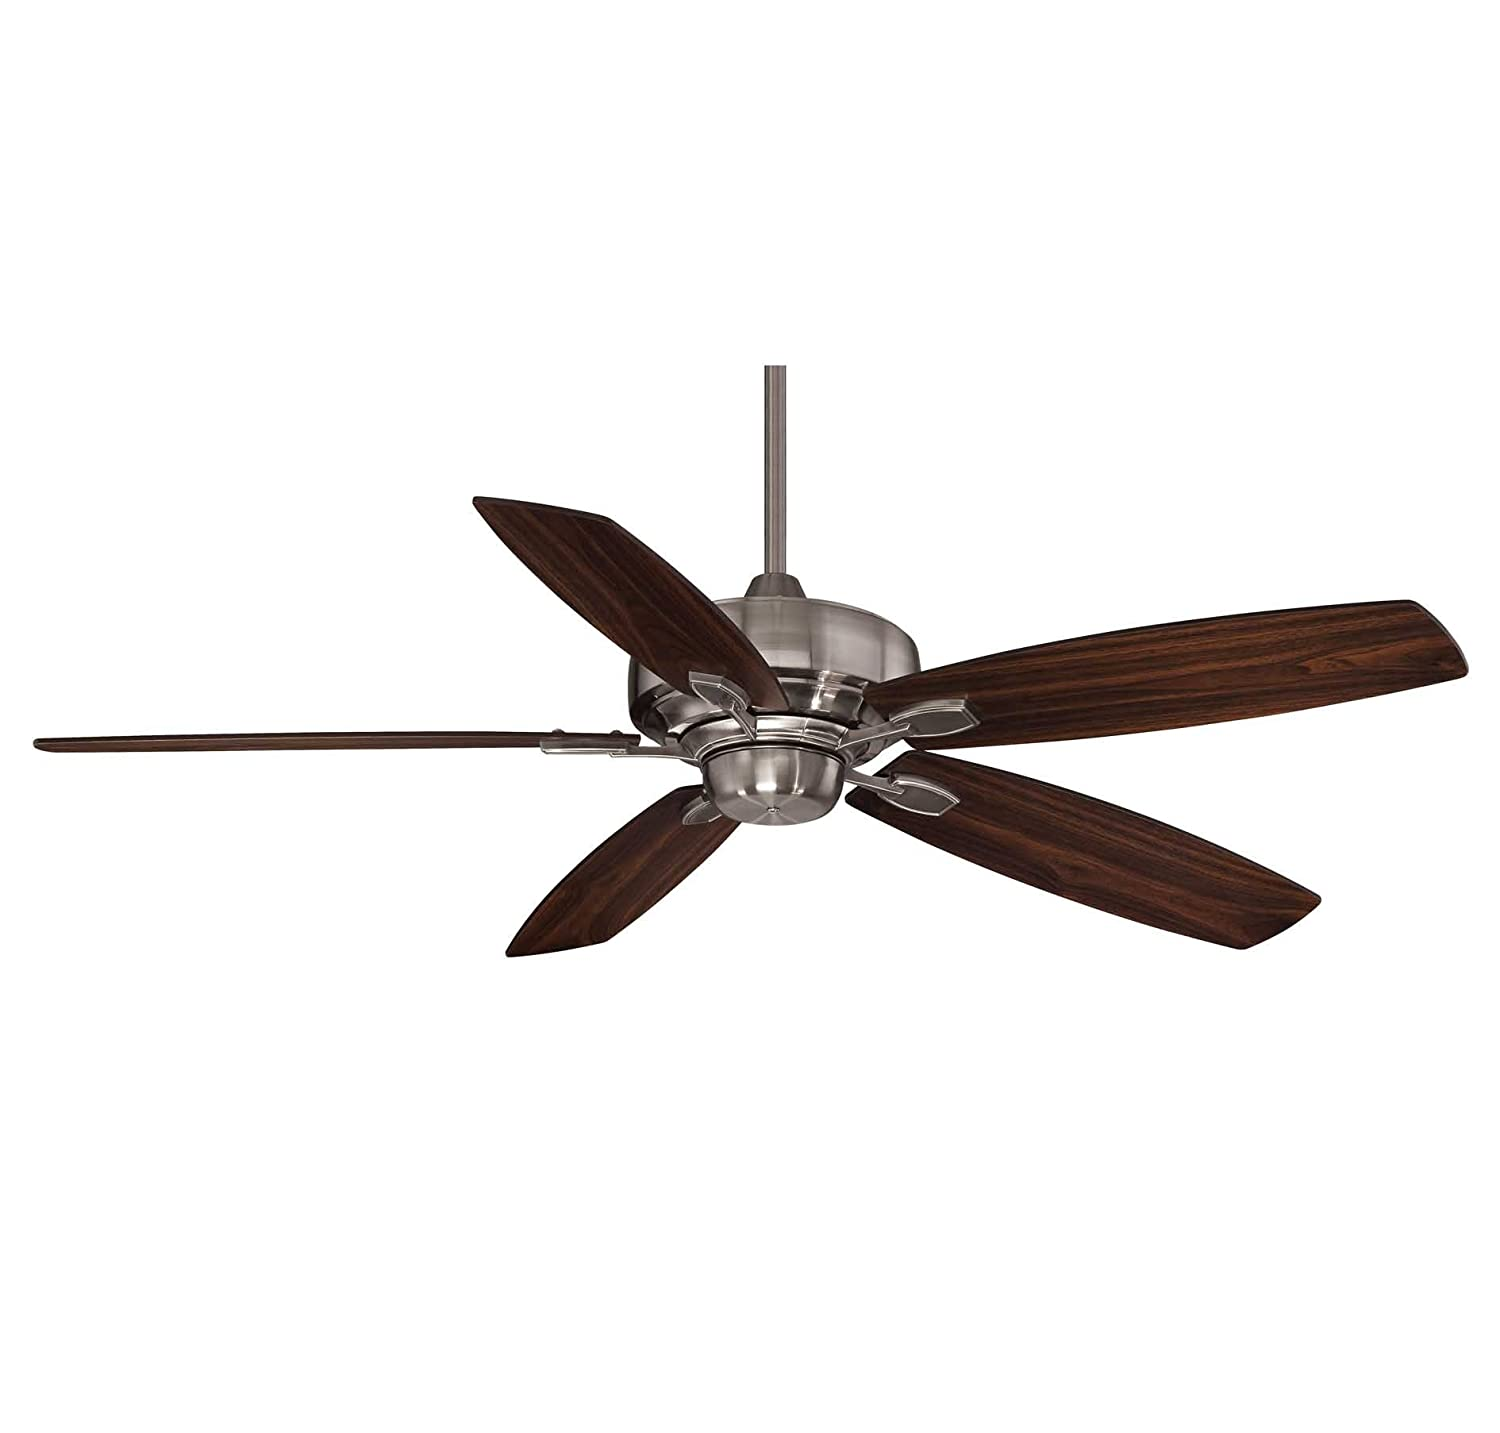 Savoy House 52 830 5RV 187 Wind Star 52 Inch Ceiling Fan Brushed